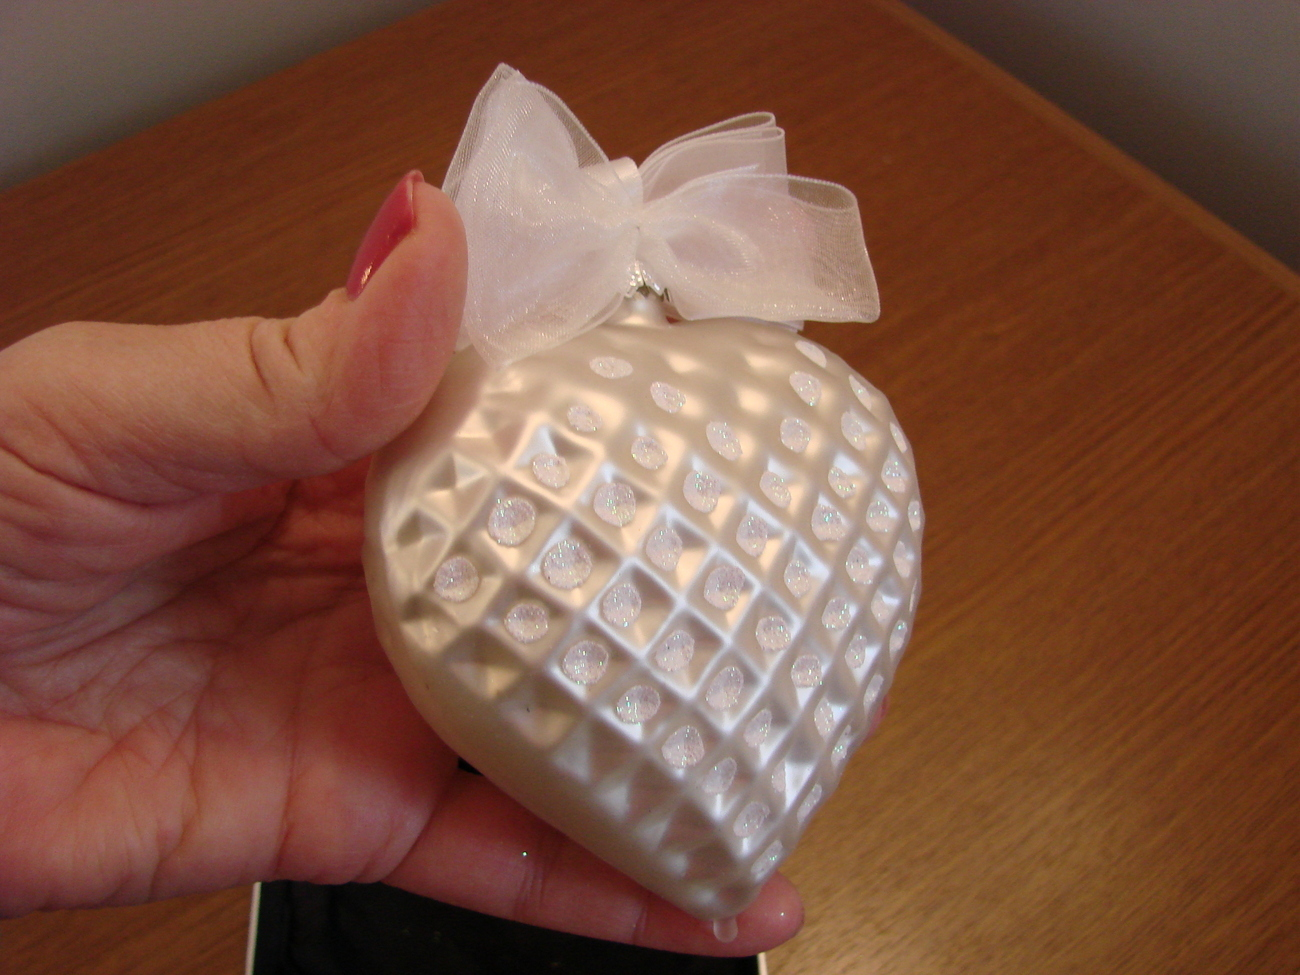 Jeweled Blown Glass Pearl White Heart Ornament New in Box image 2